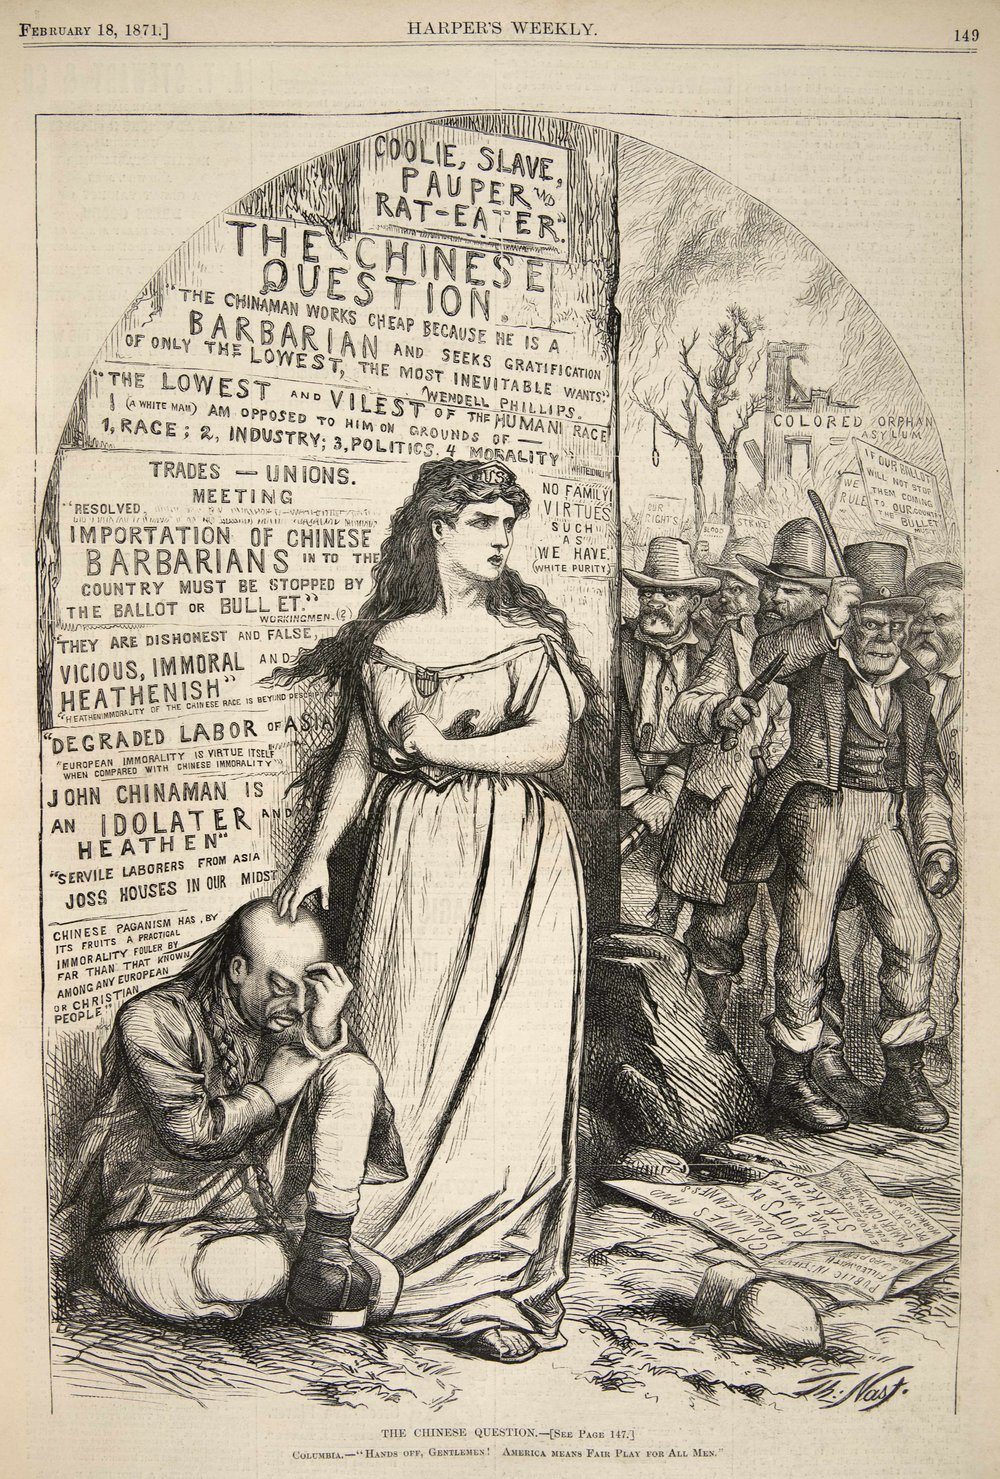 """The Chinese Question,"" Thomas Nast, Harper's Weekly, February 18, 1871. Source: UDel/Walfred"